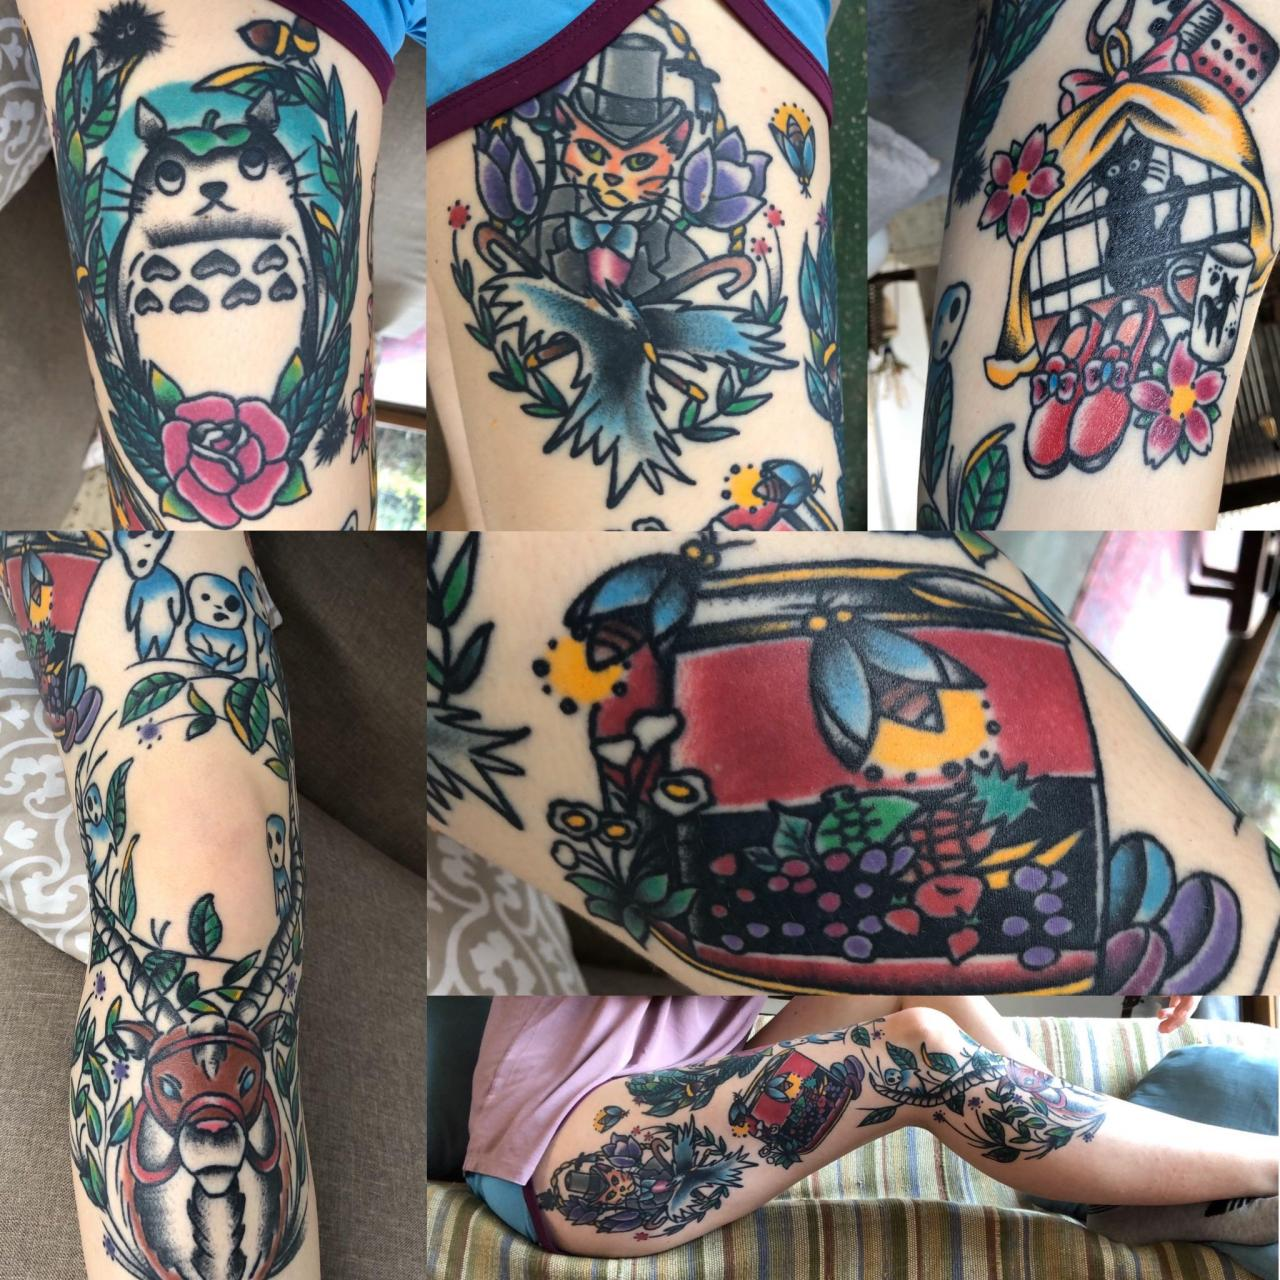 My Traditional Studio Ghibli leg sleeve progress. So far, so good.